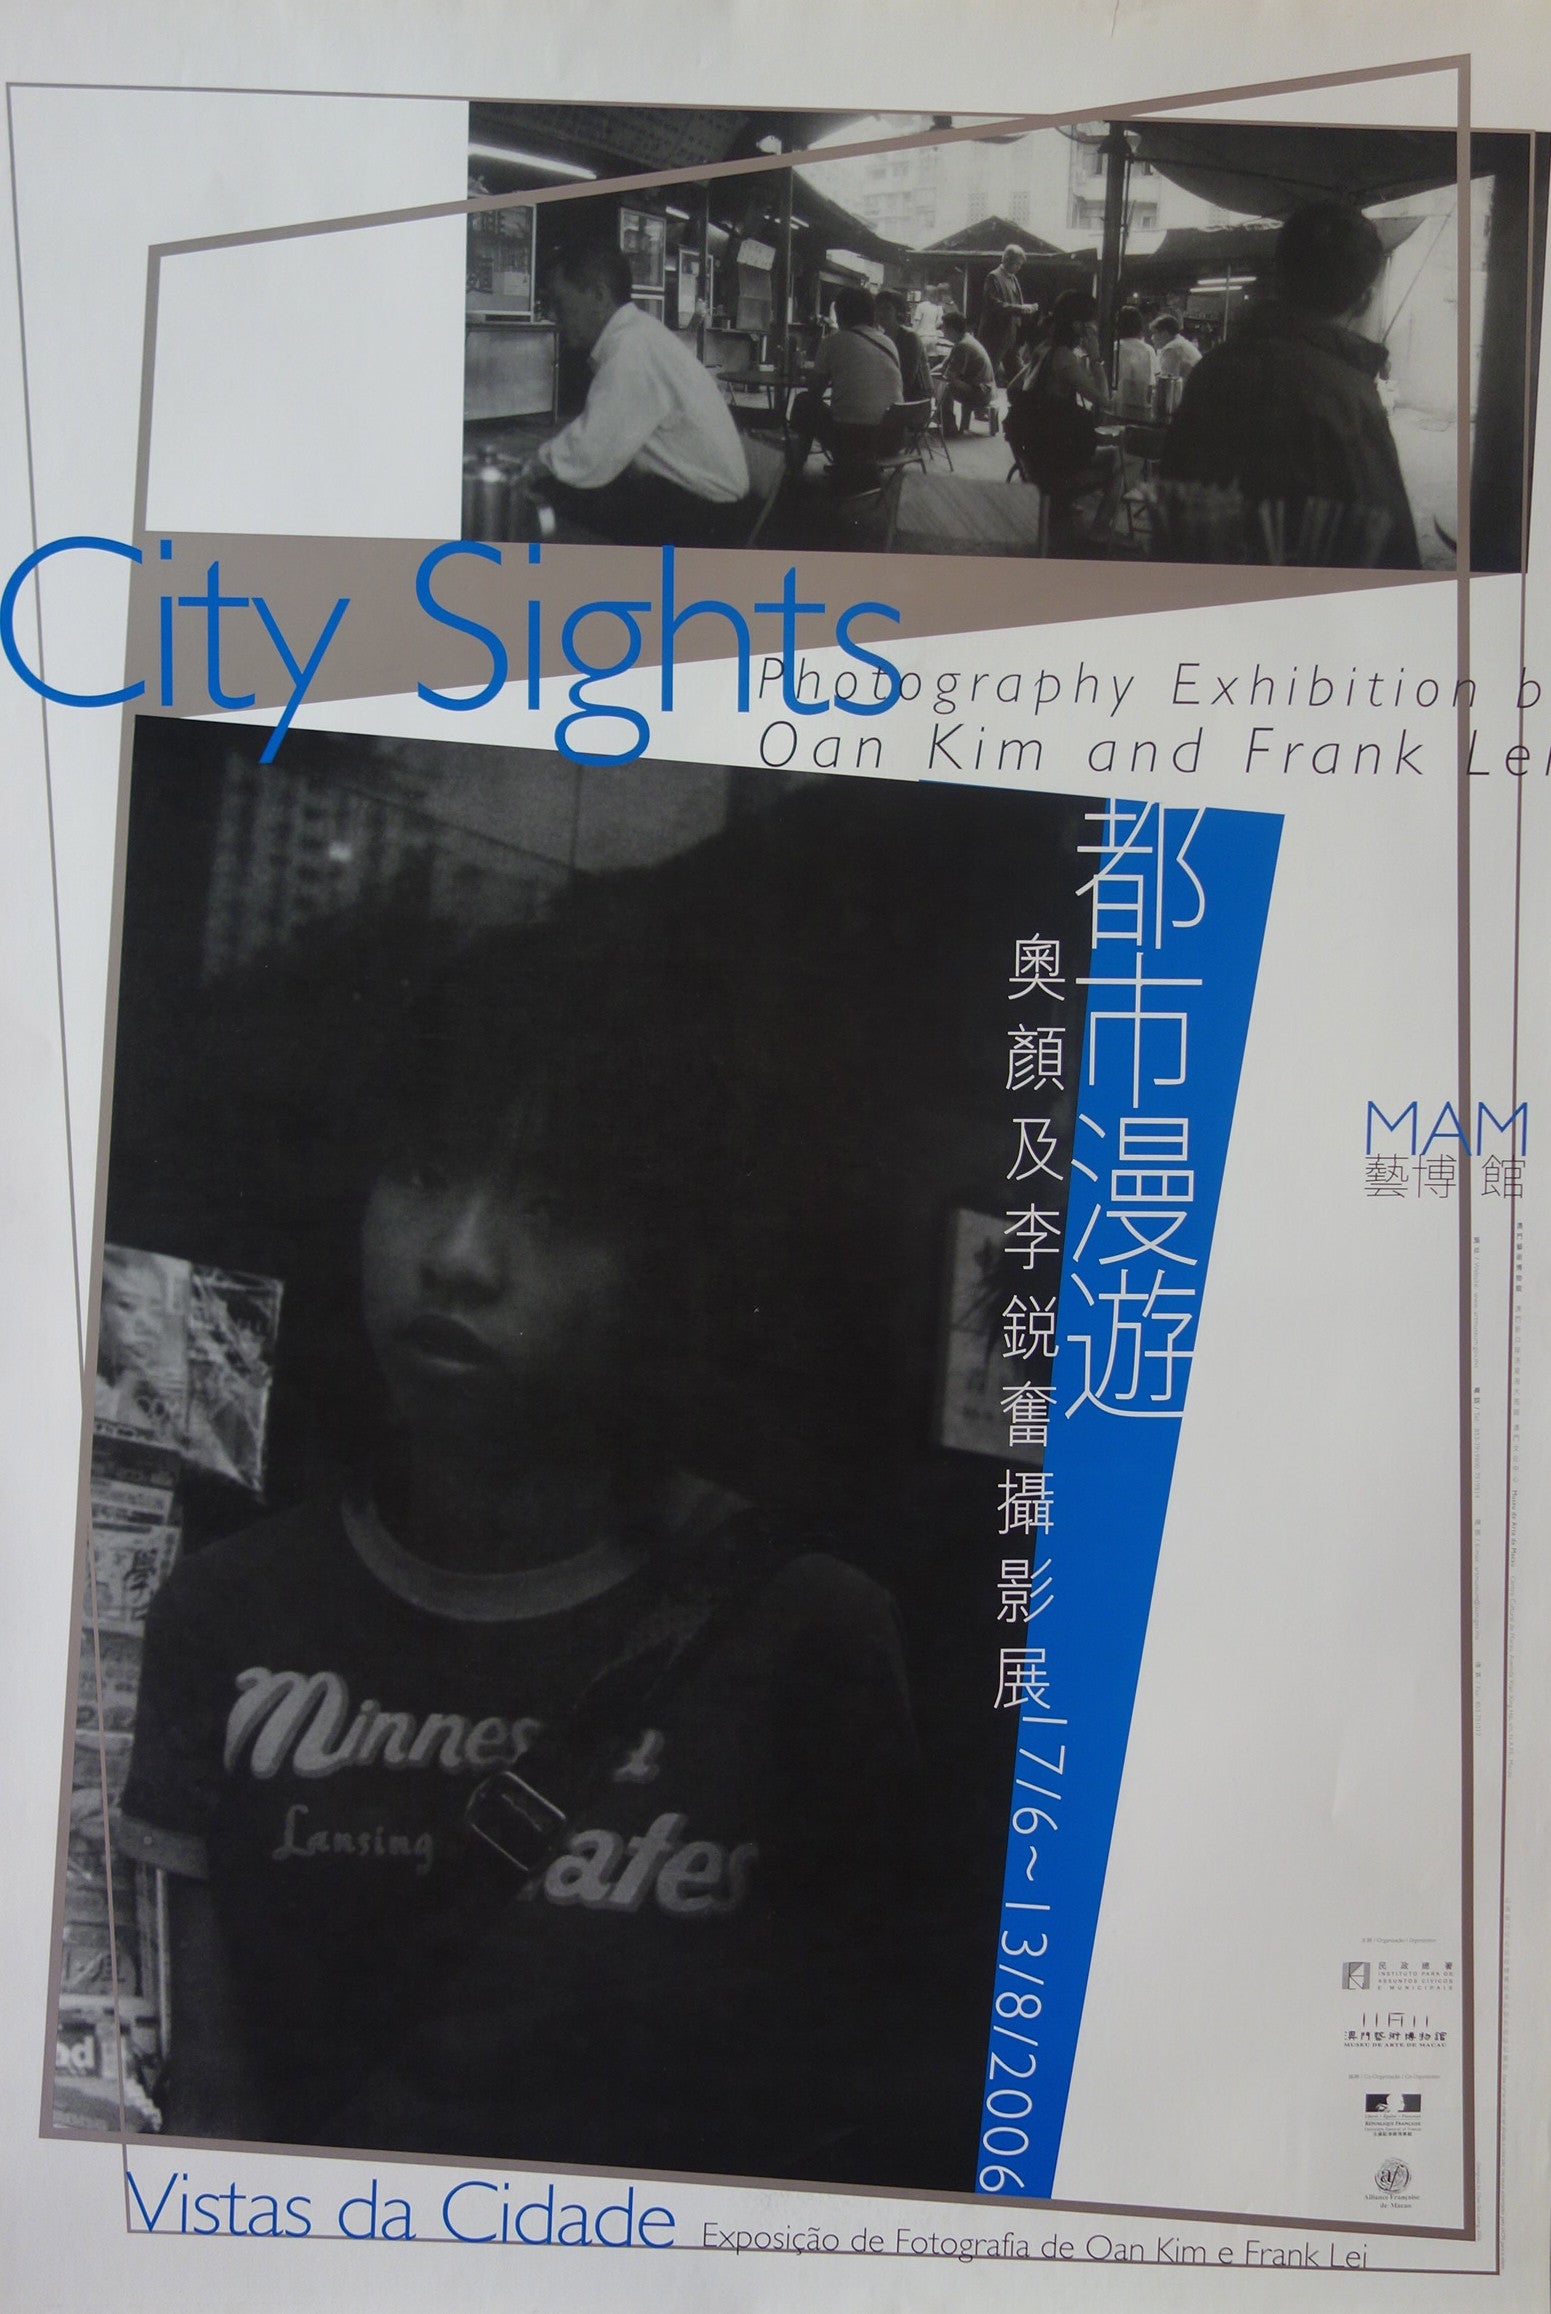 City Sight: By Oan Kim and Frank Lei